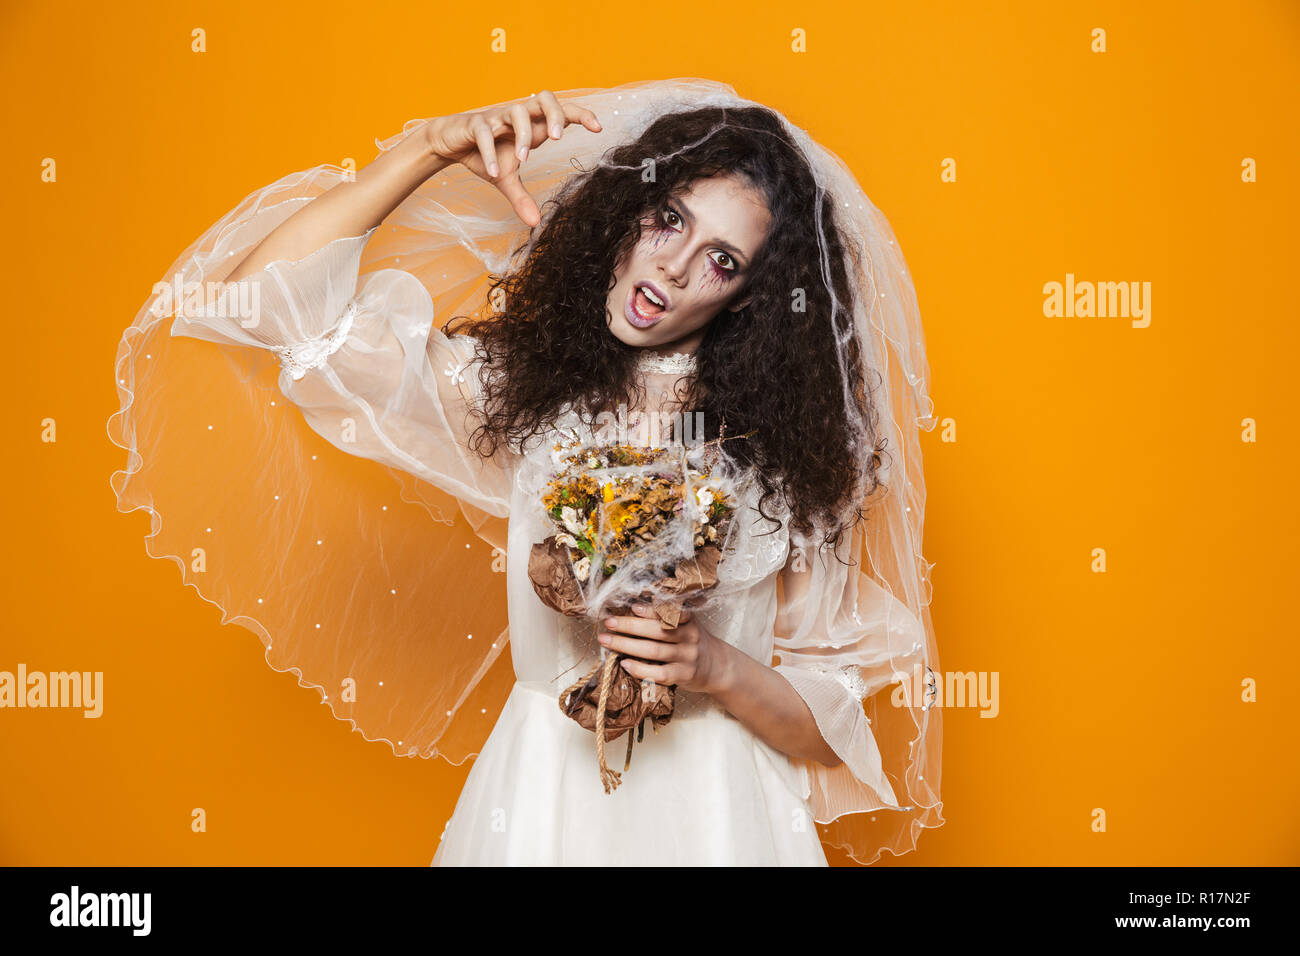 Creepy Dead Bride In White Wedding Dress Looking Camera And Scary